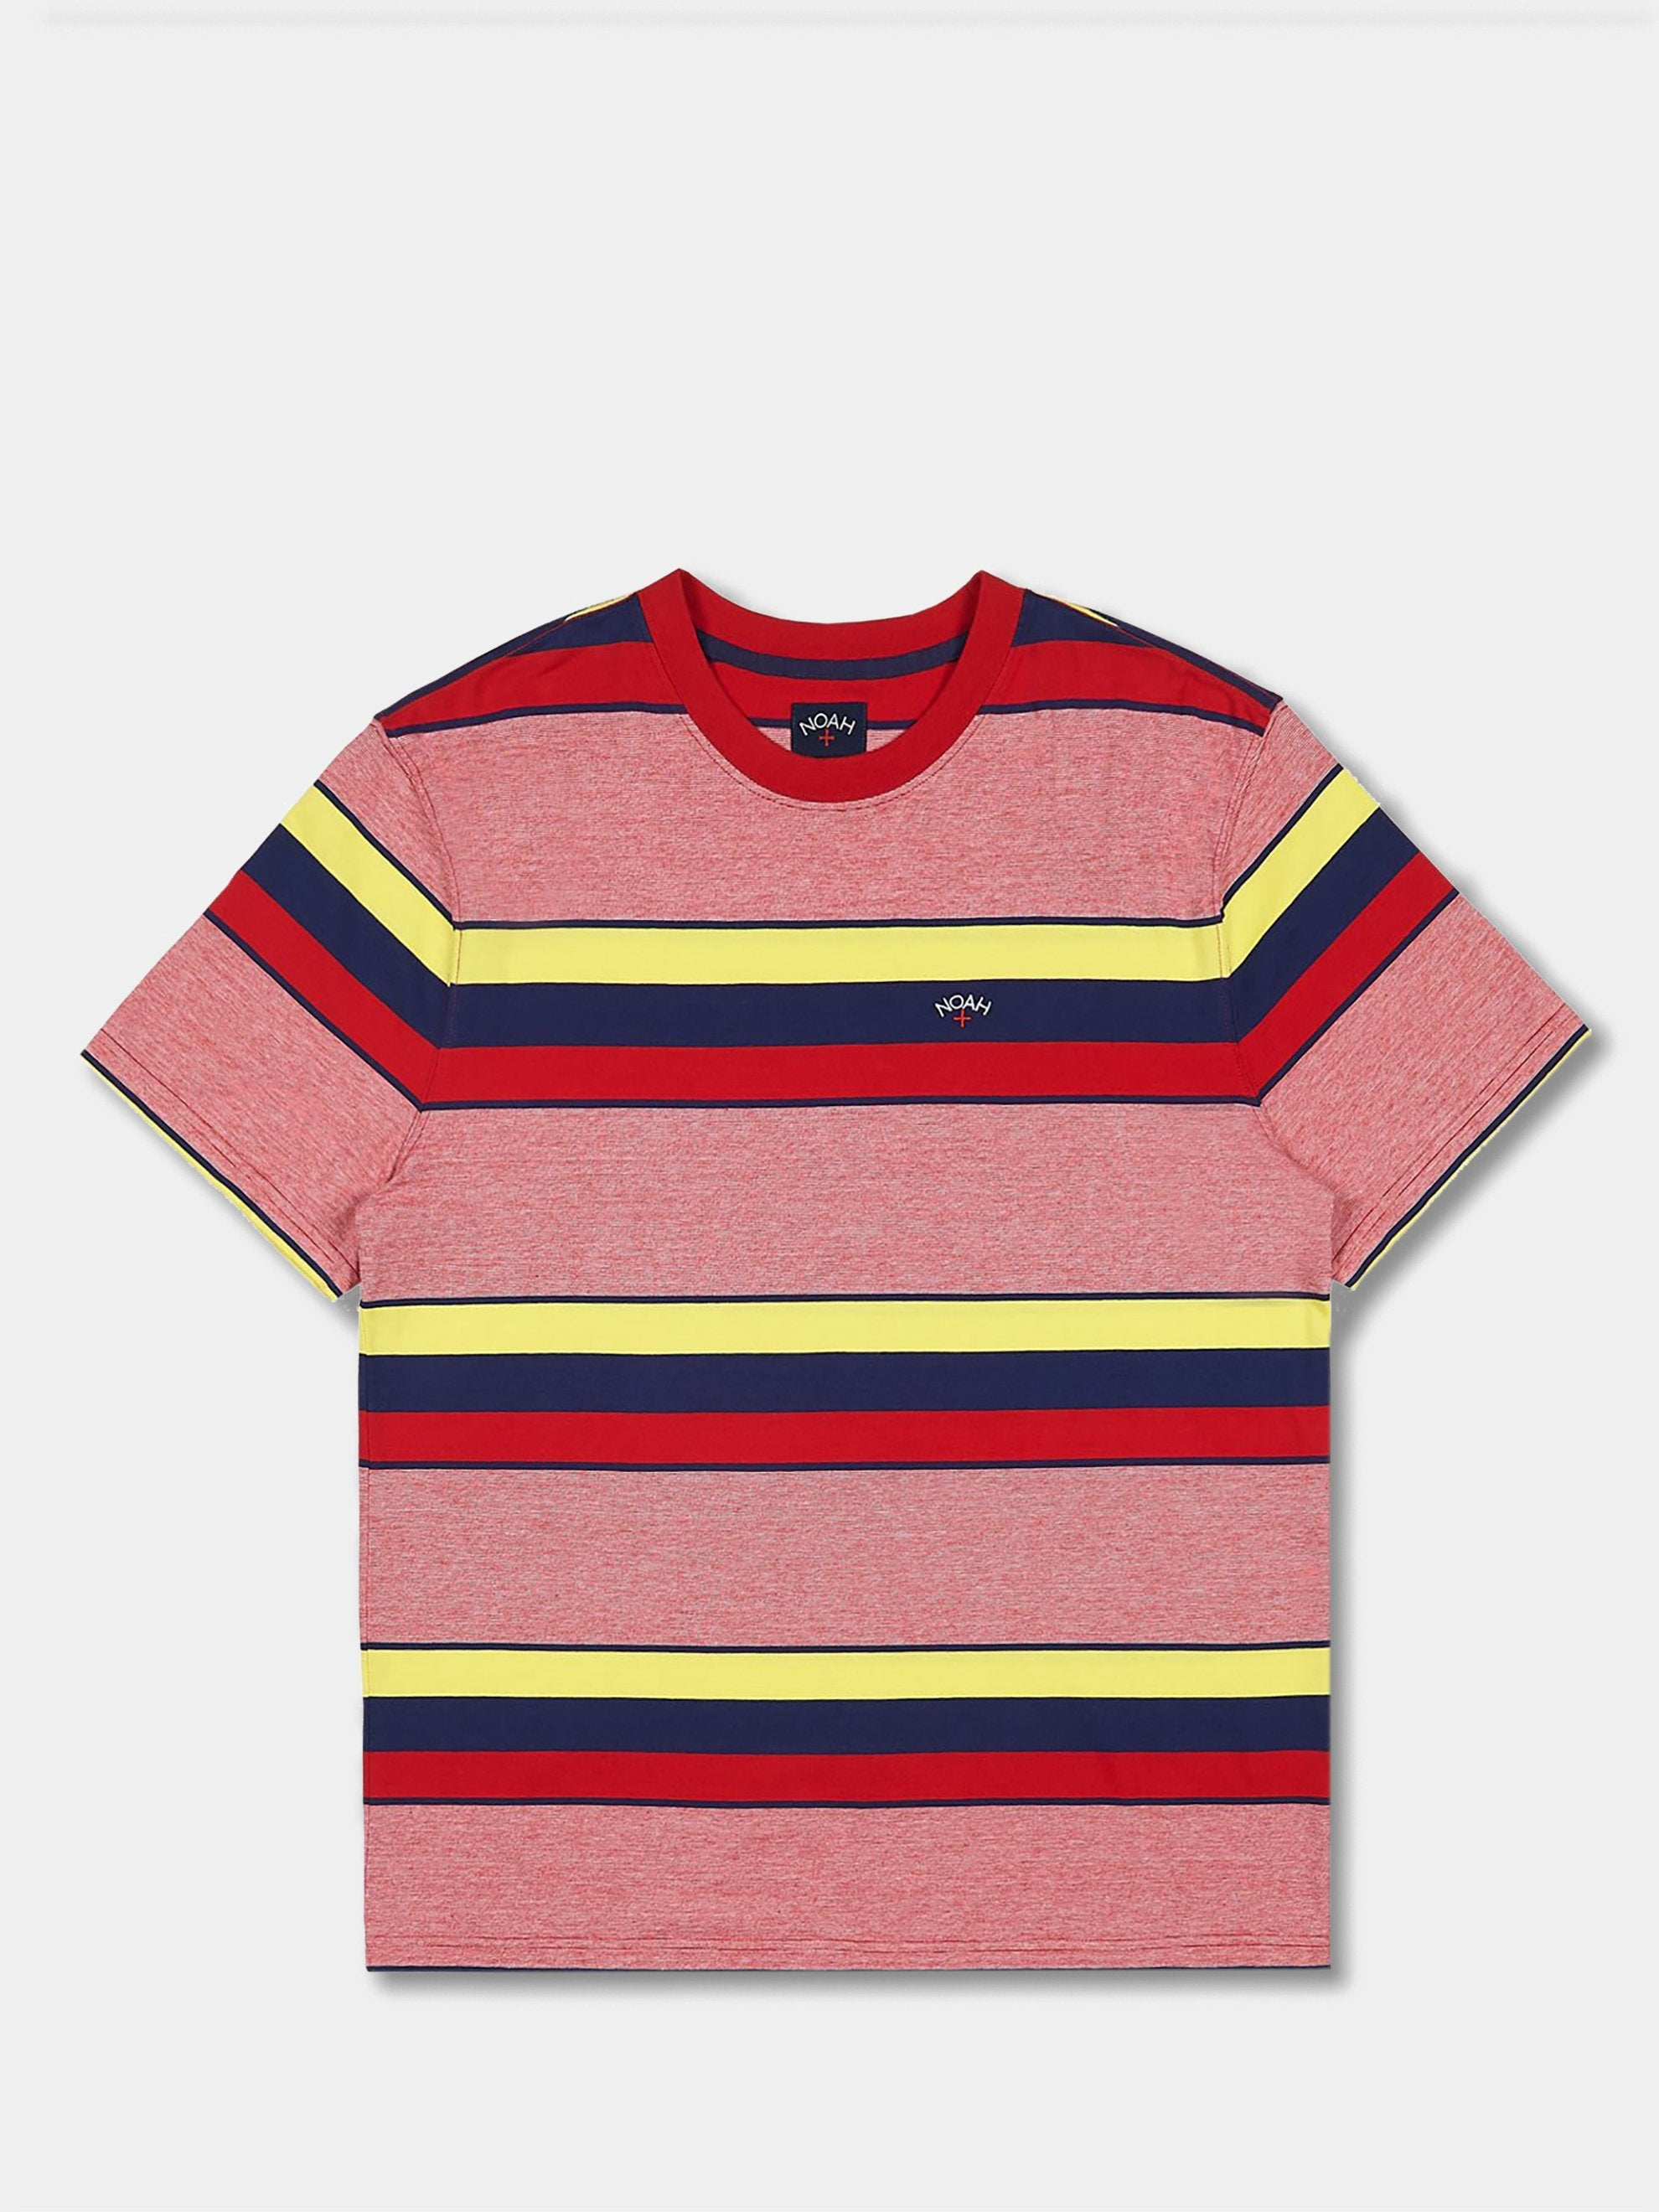 Retro Stripe Tee